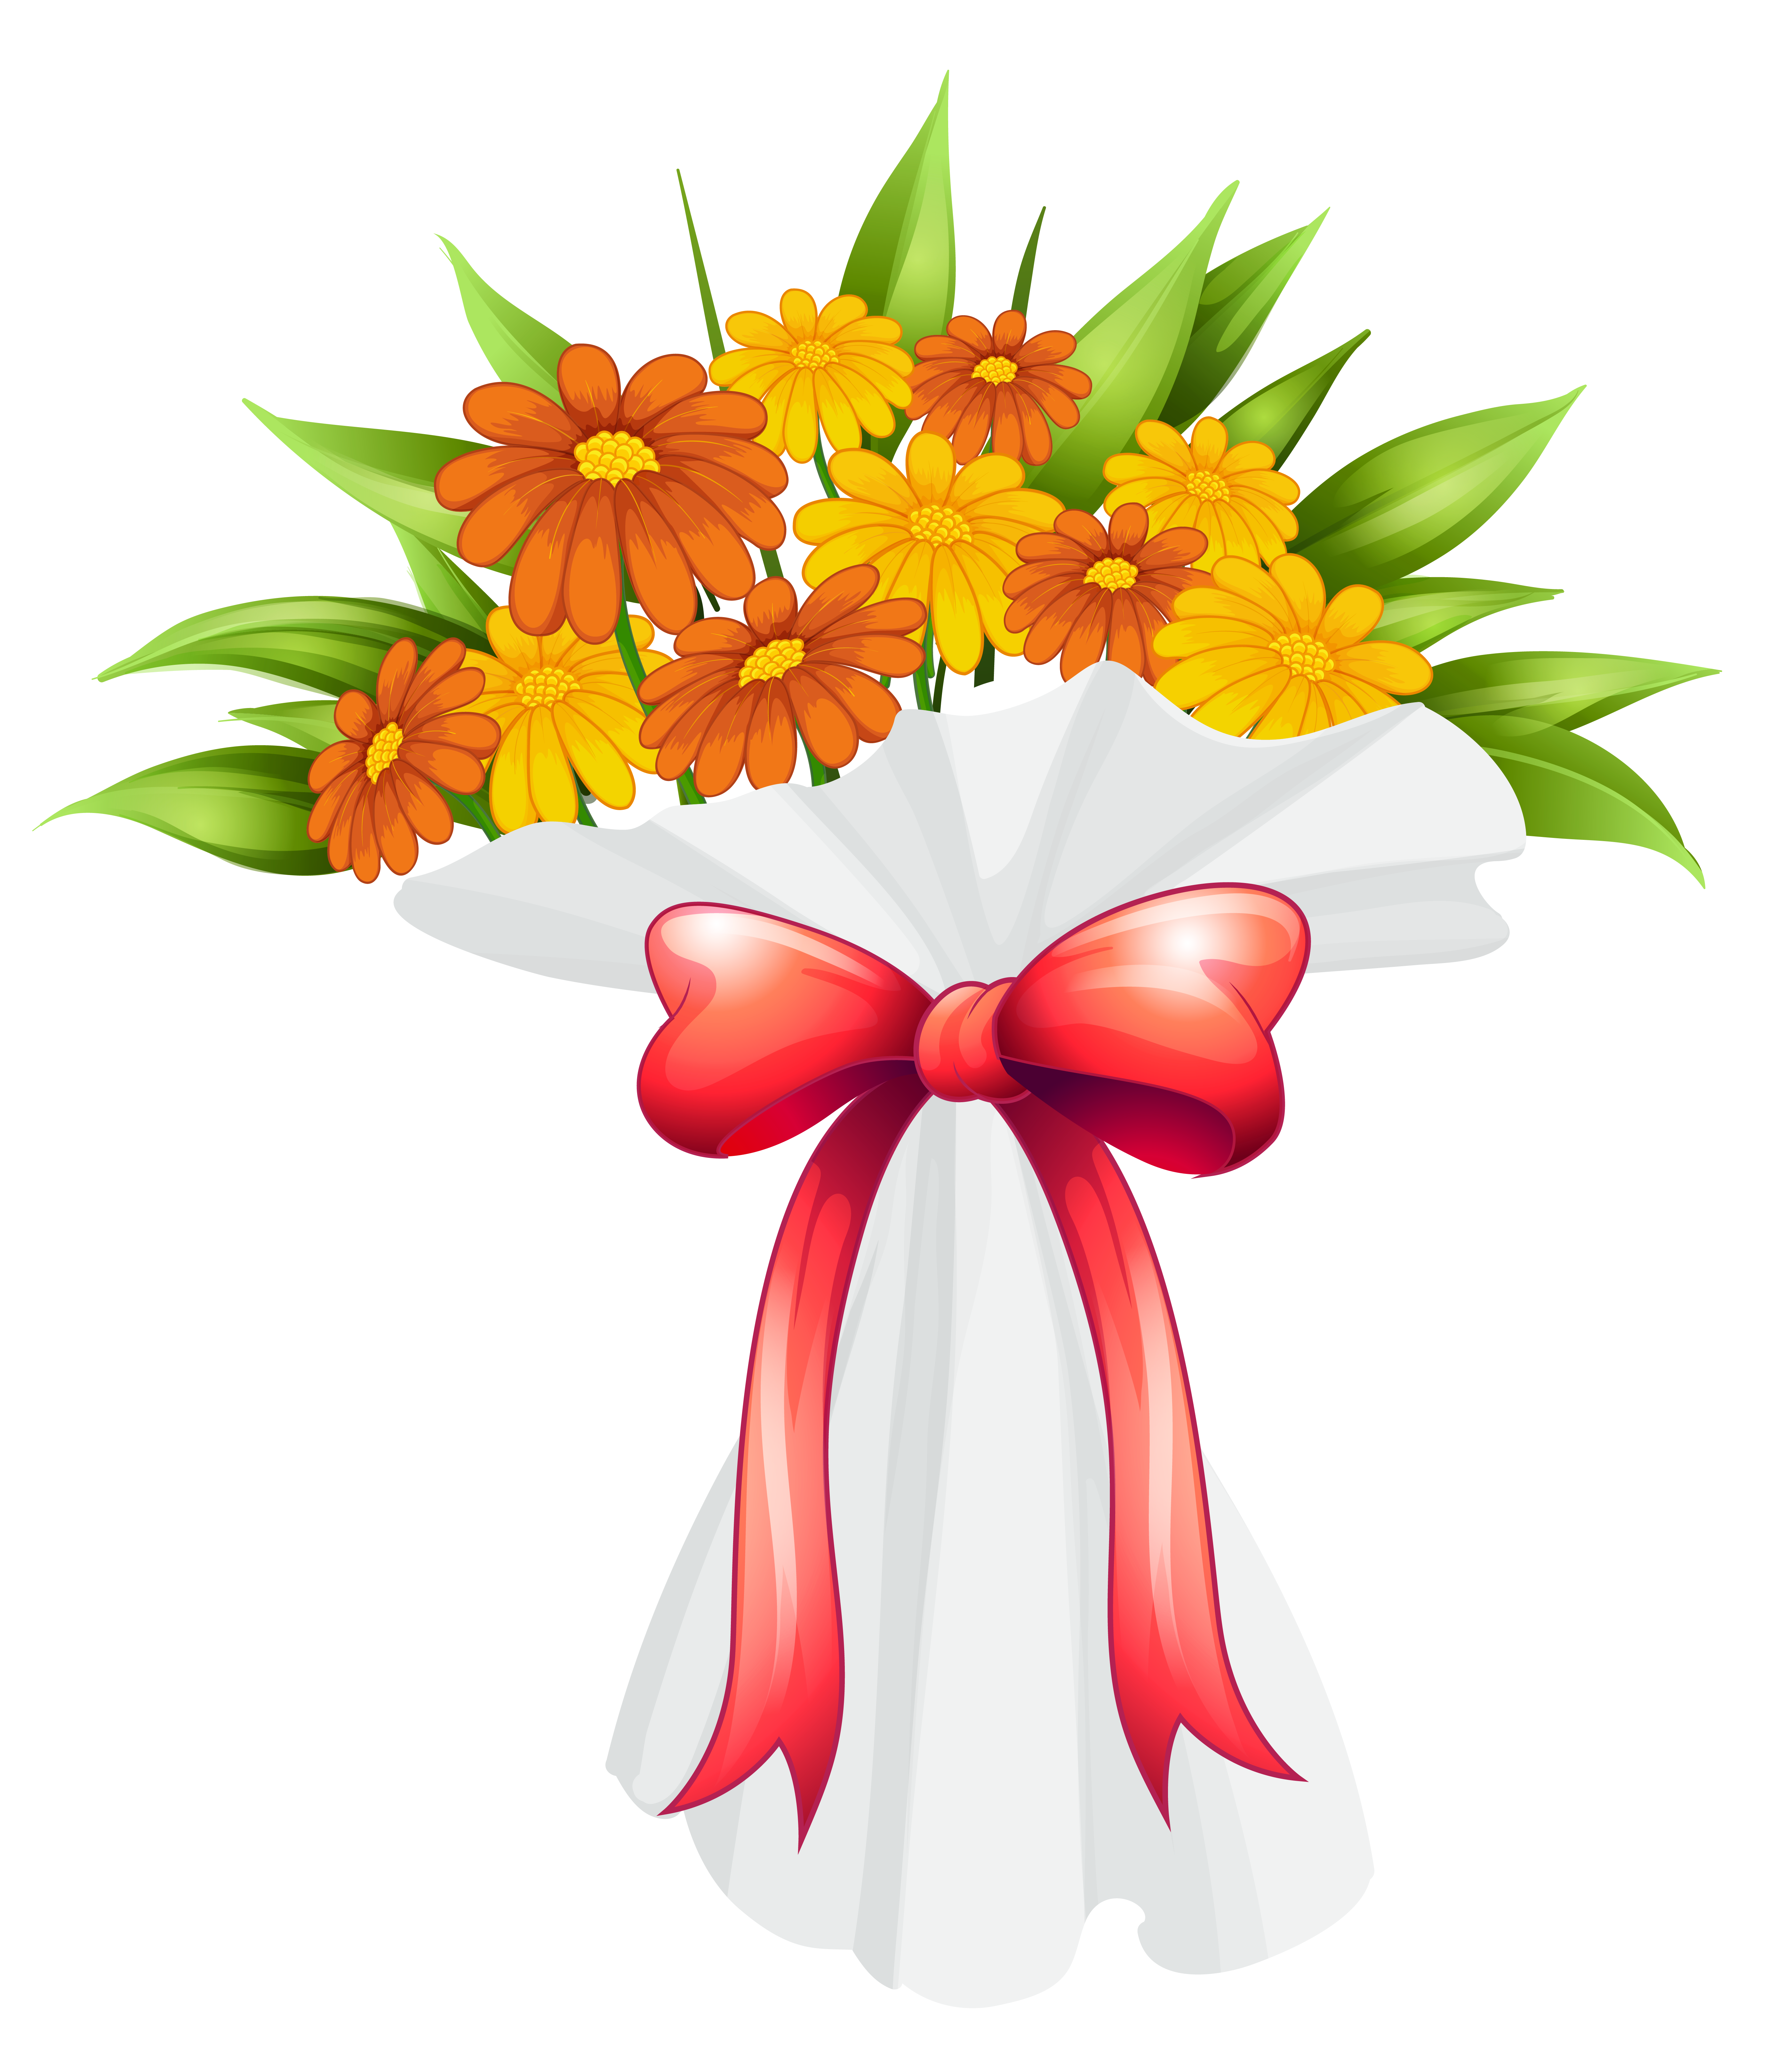 Flower png cartoon. Red and orange flowers